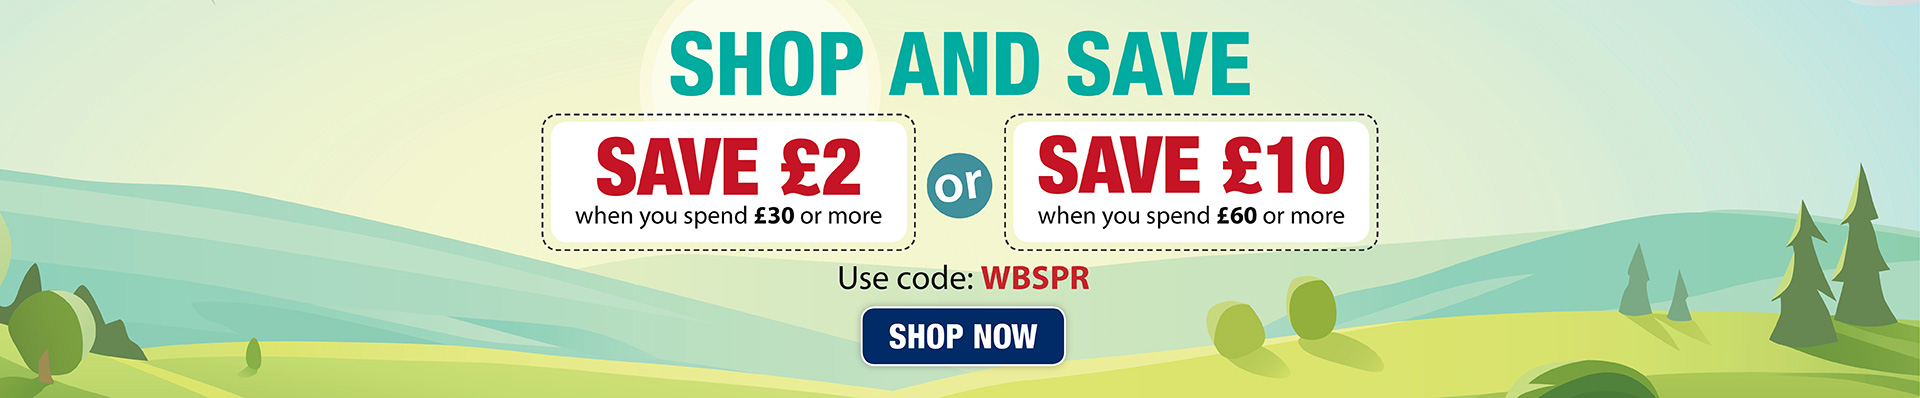 Shop and Save Spring Sale